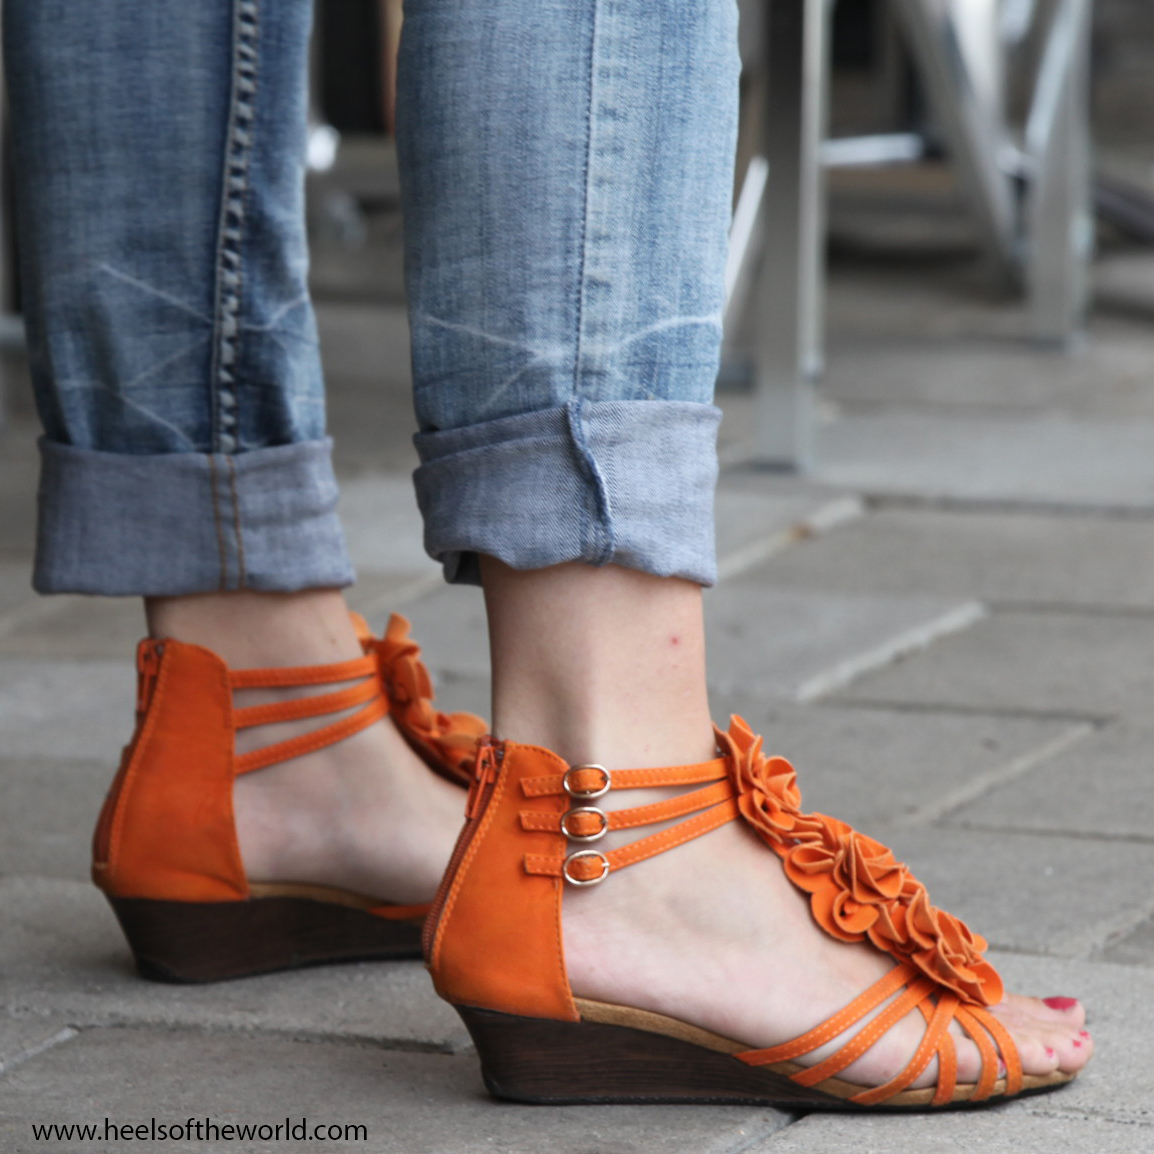 Dutch heels. Orange wedges and red nails at Jazz event in Hillegersberg (Rotterdam/NL)